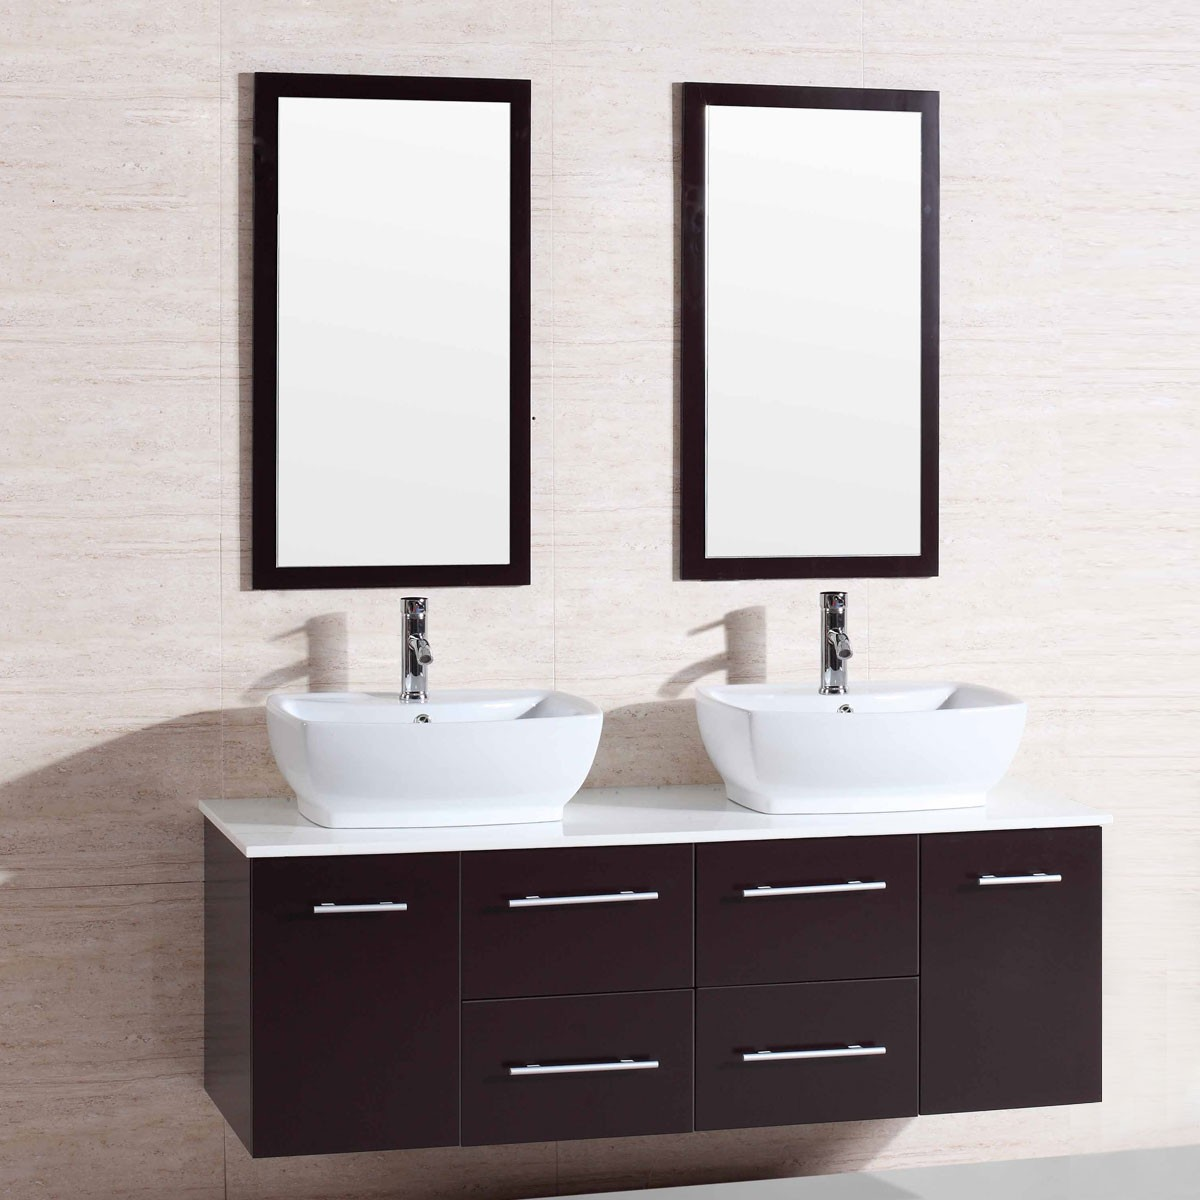 60 in wall mount bathroom vanity set with double sinks